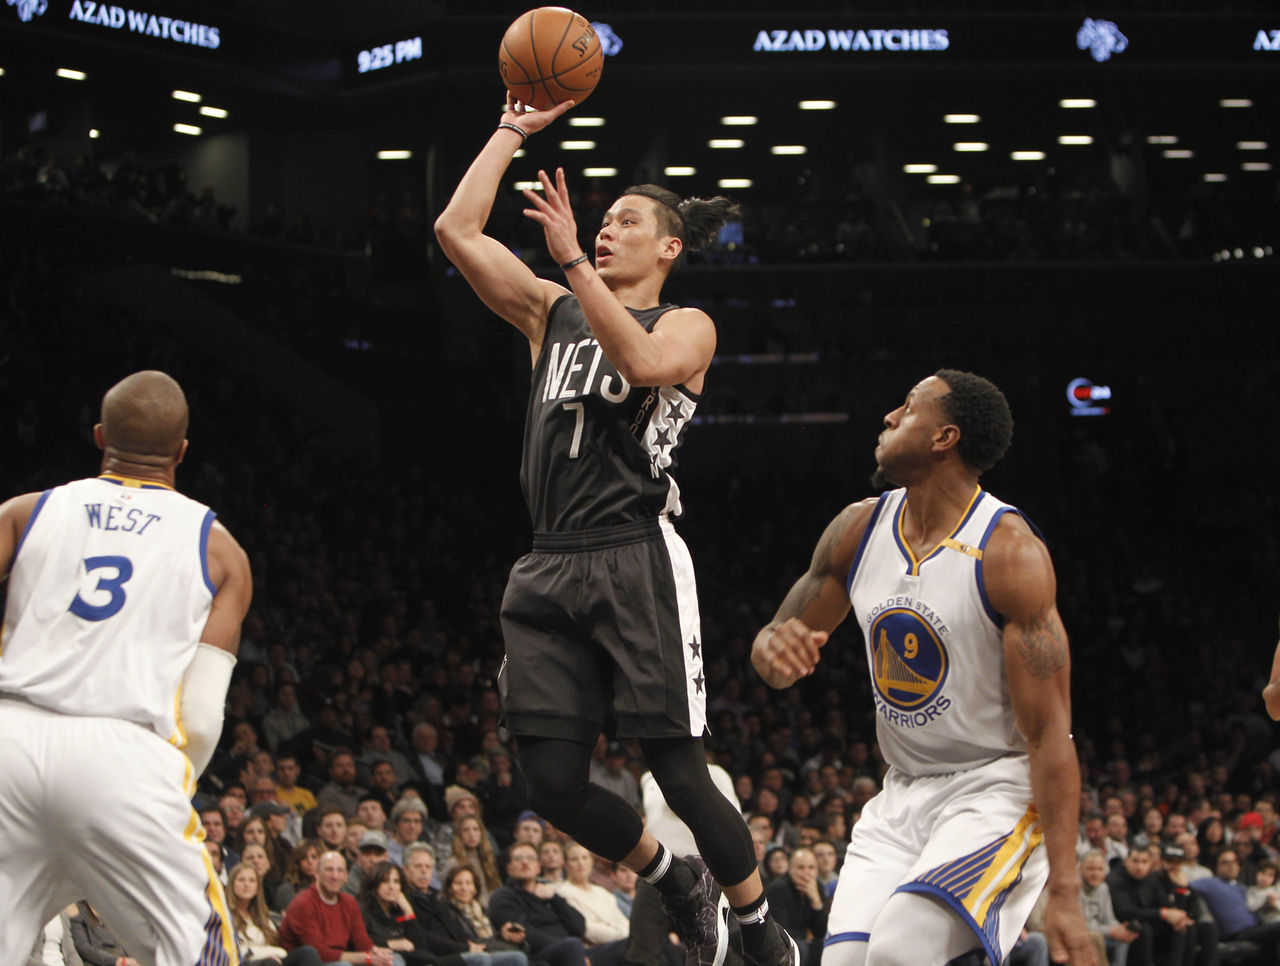 Cropped 2016 12 23t032641z 2058532764 nocid rtrmadp 3 nba golden state warriors at brooklyn nets